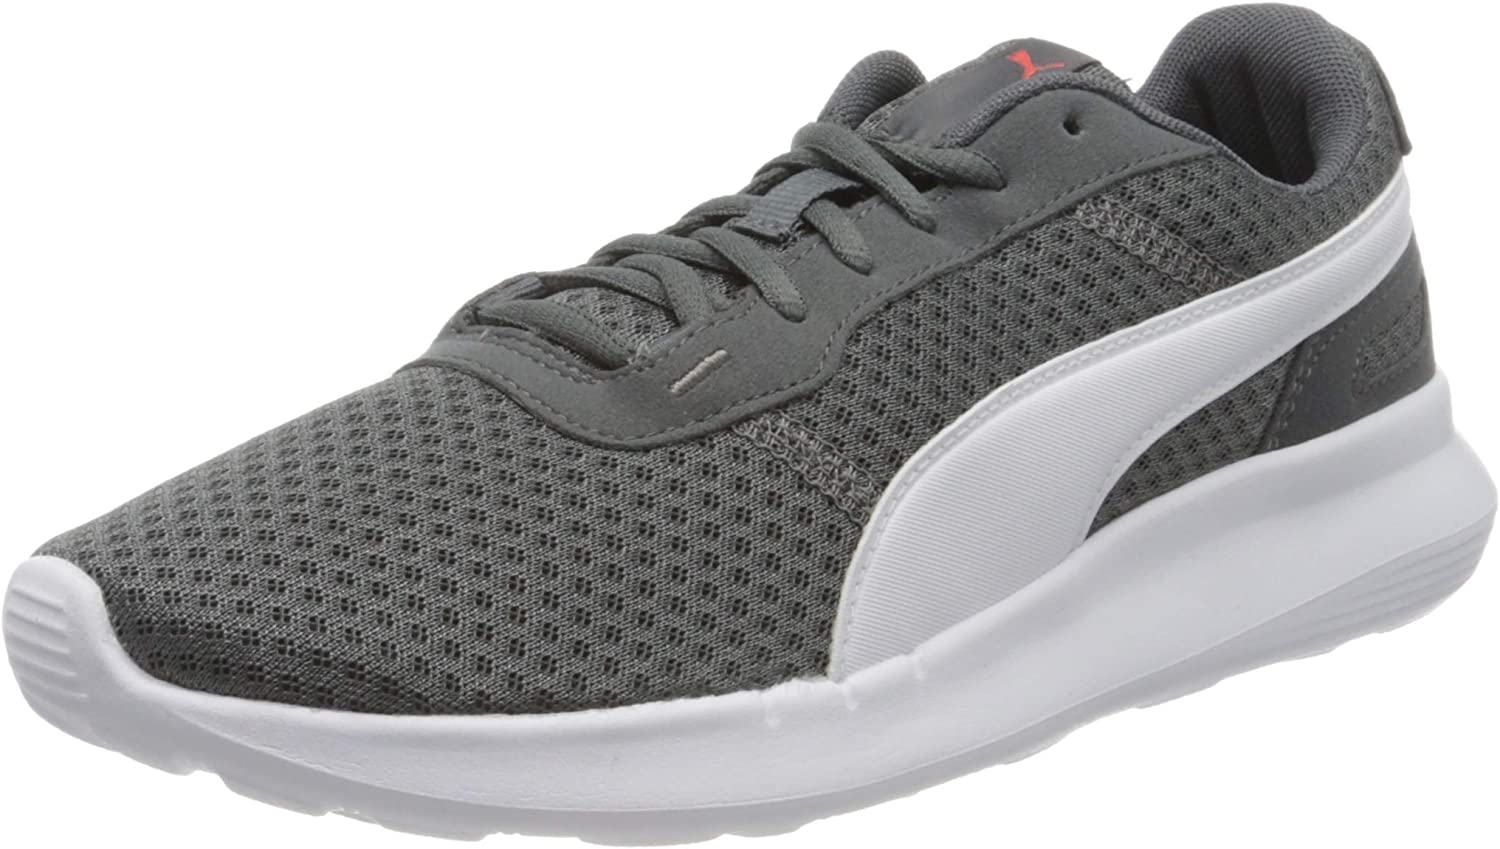 PUMA St Activate, Zapatillas Unisex Adulto